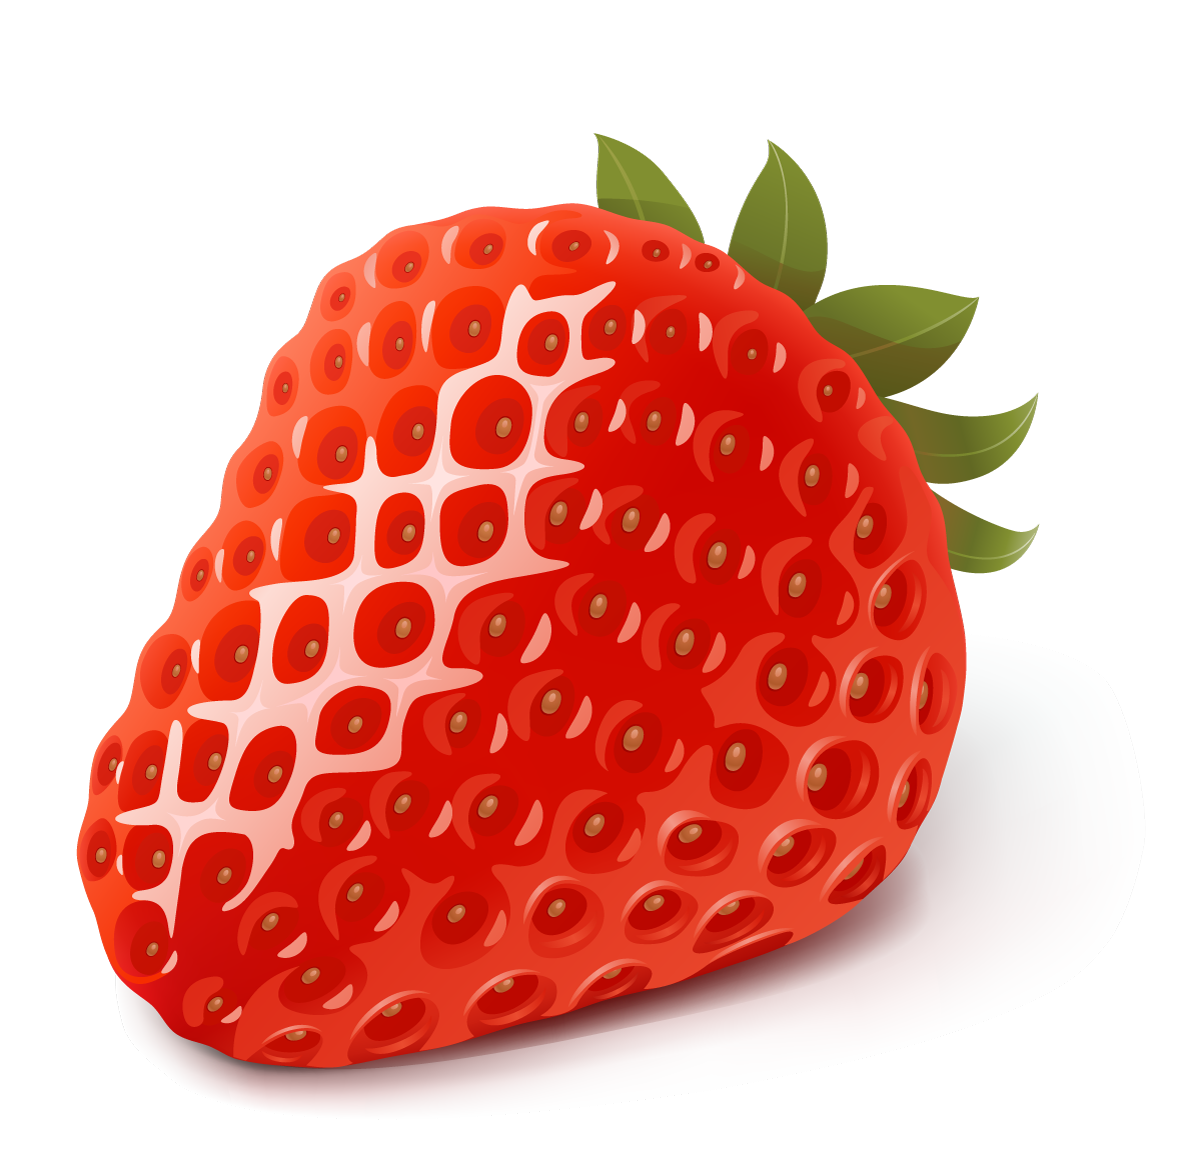 Strawberry Fruit Png image #22926 - Strawberry PNG